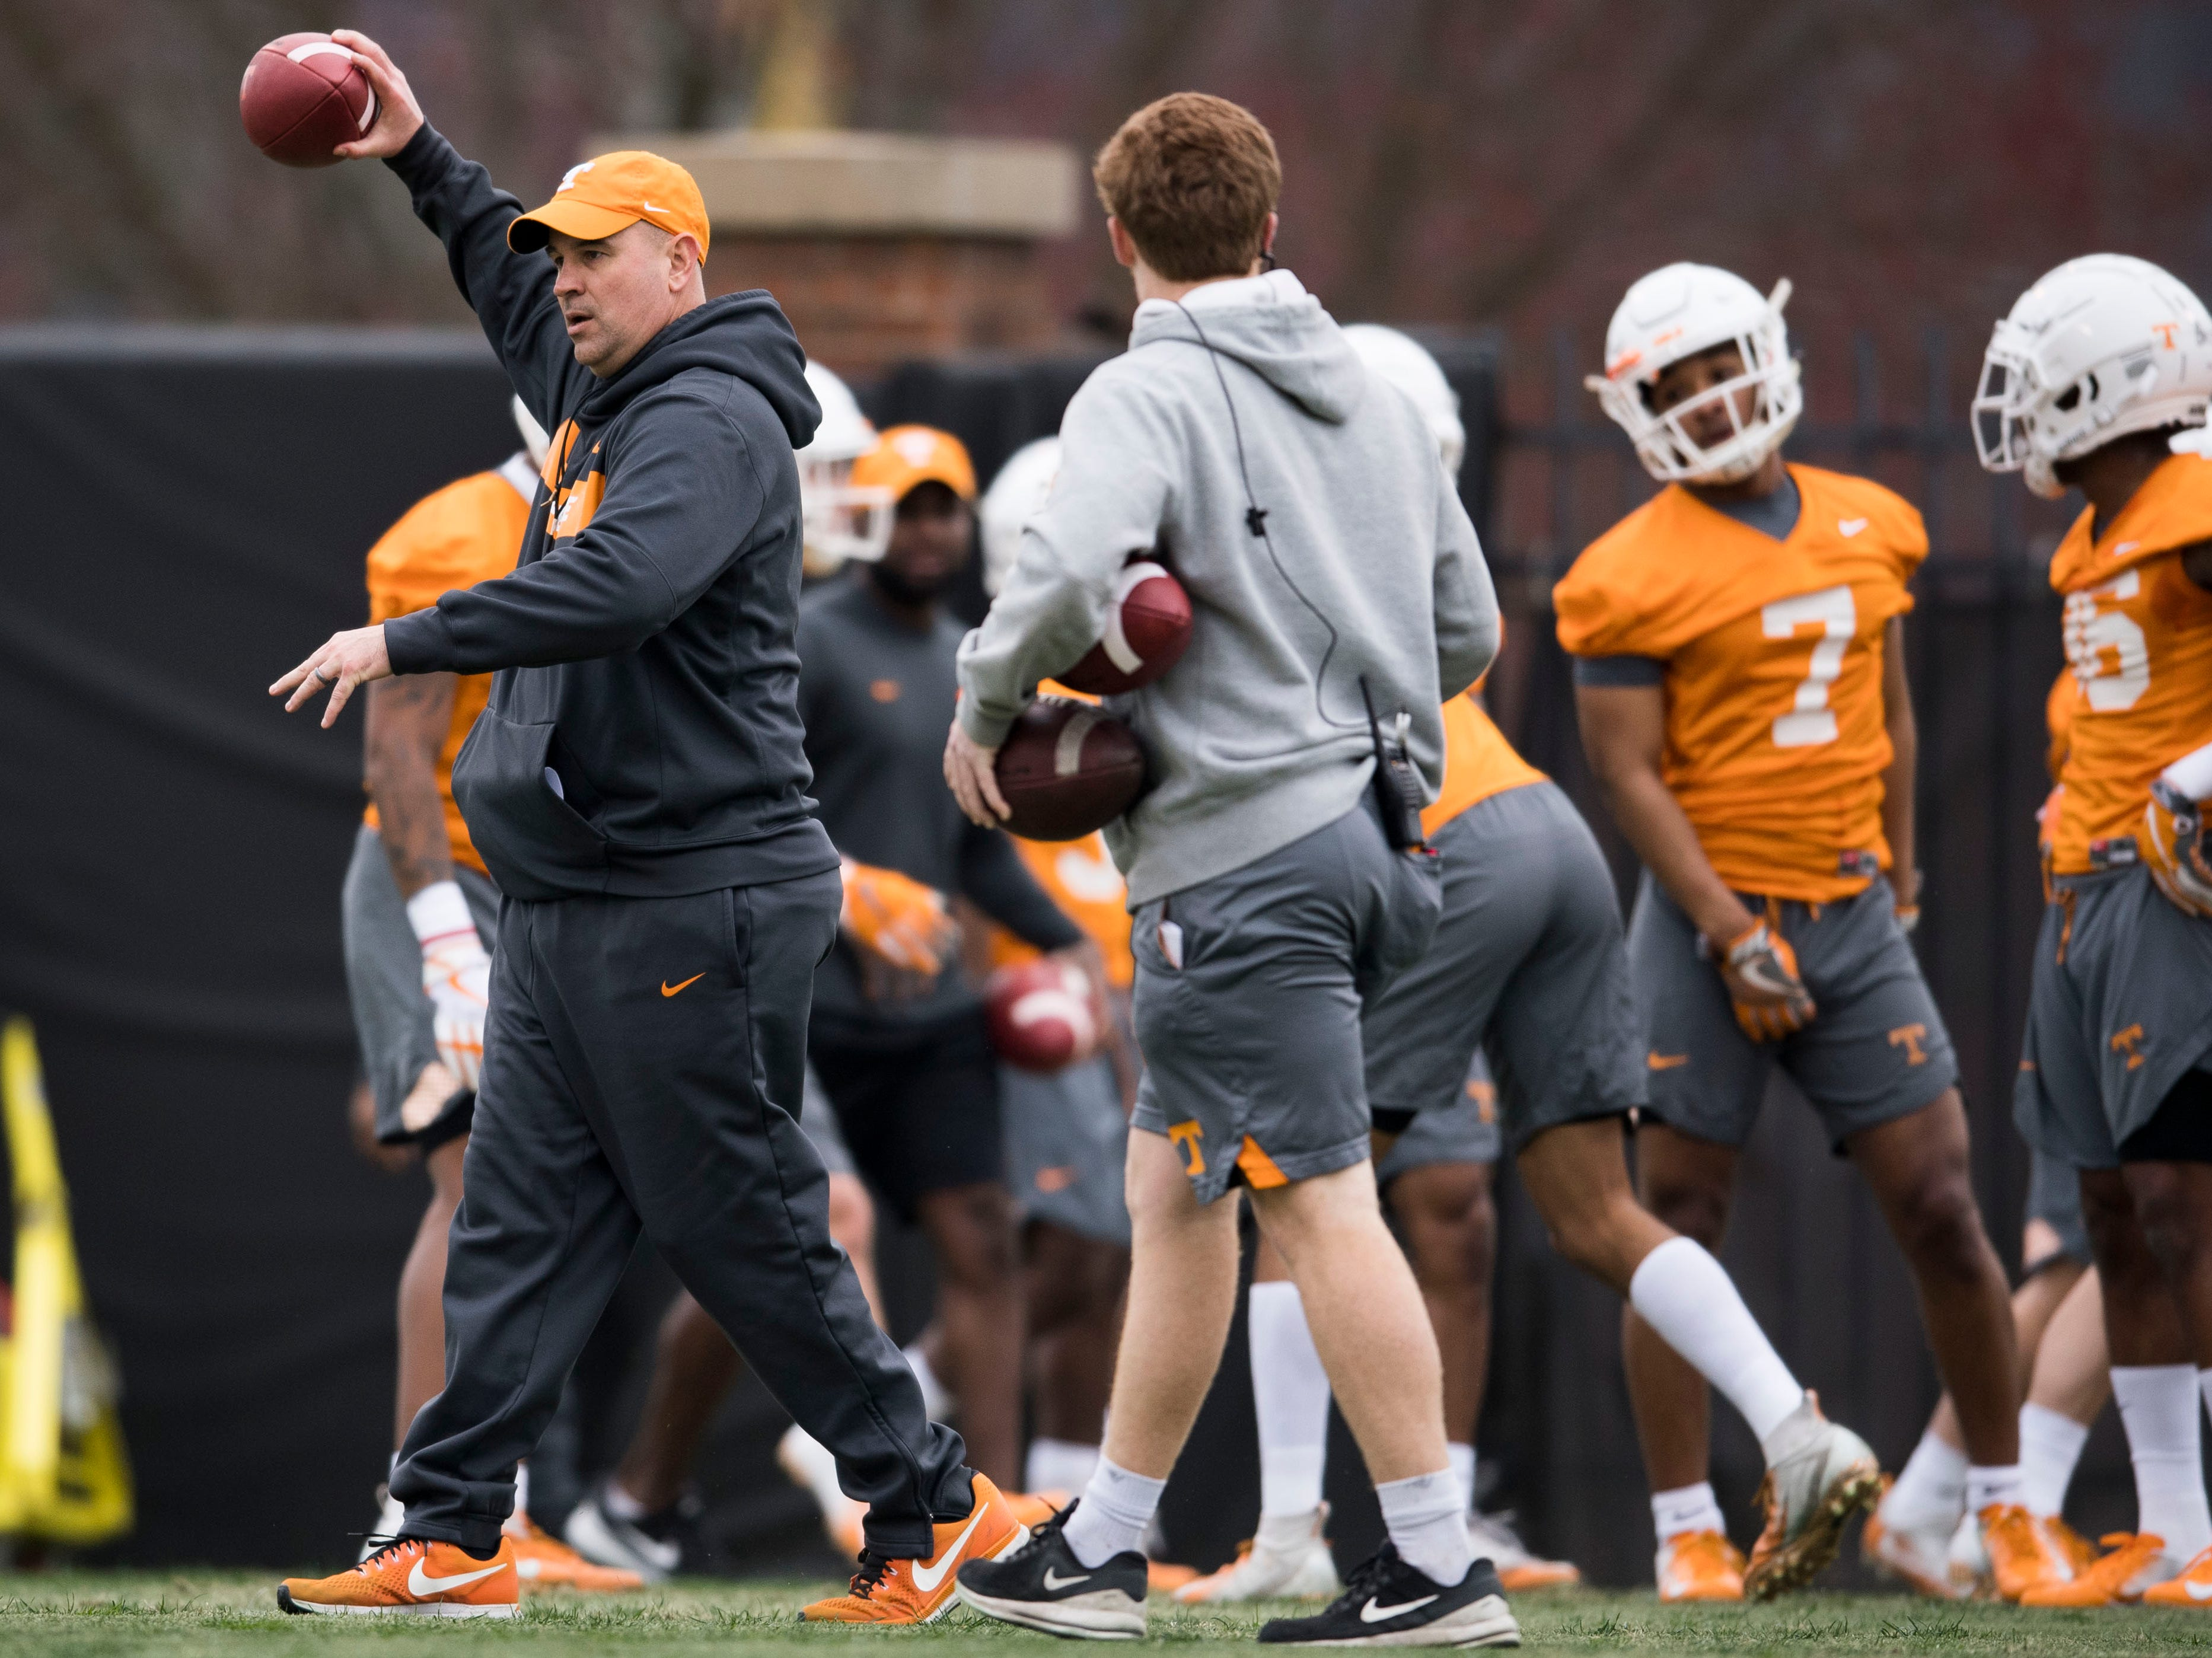 Tennessee head coach Jeremy Pruitt holds a ball during Tennessee football's first practice of the spring season at University of Tennessee Thursday, March 7, 2019.